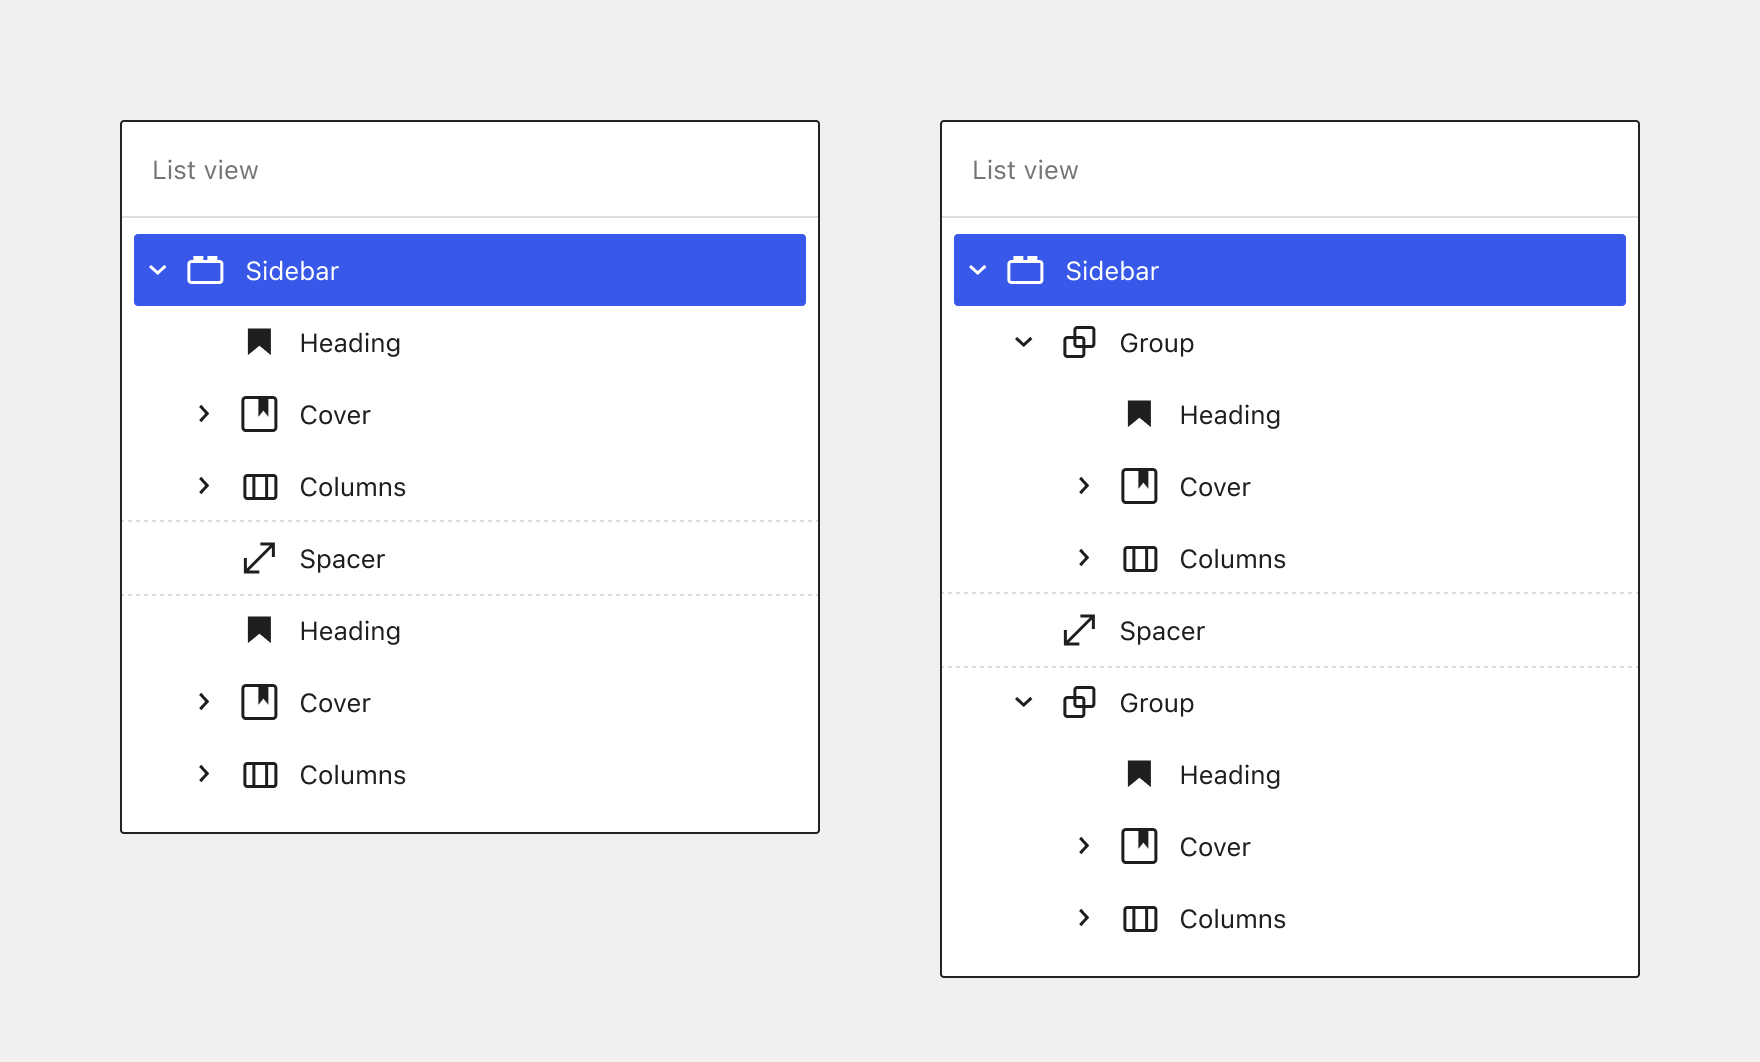 Side by side comparison of List view of a Sidebar widget area with and without grouped/nested lockups.